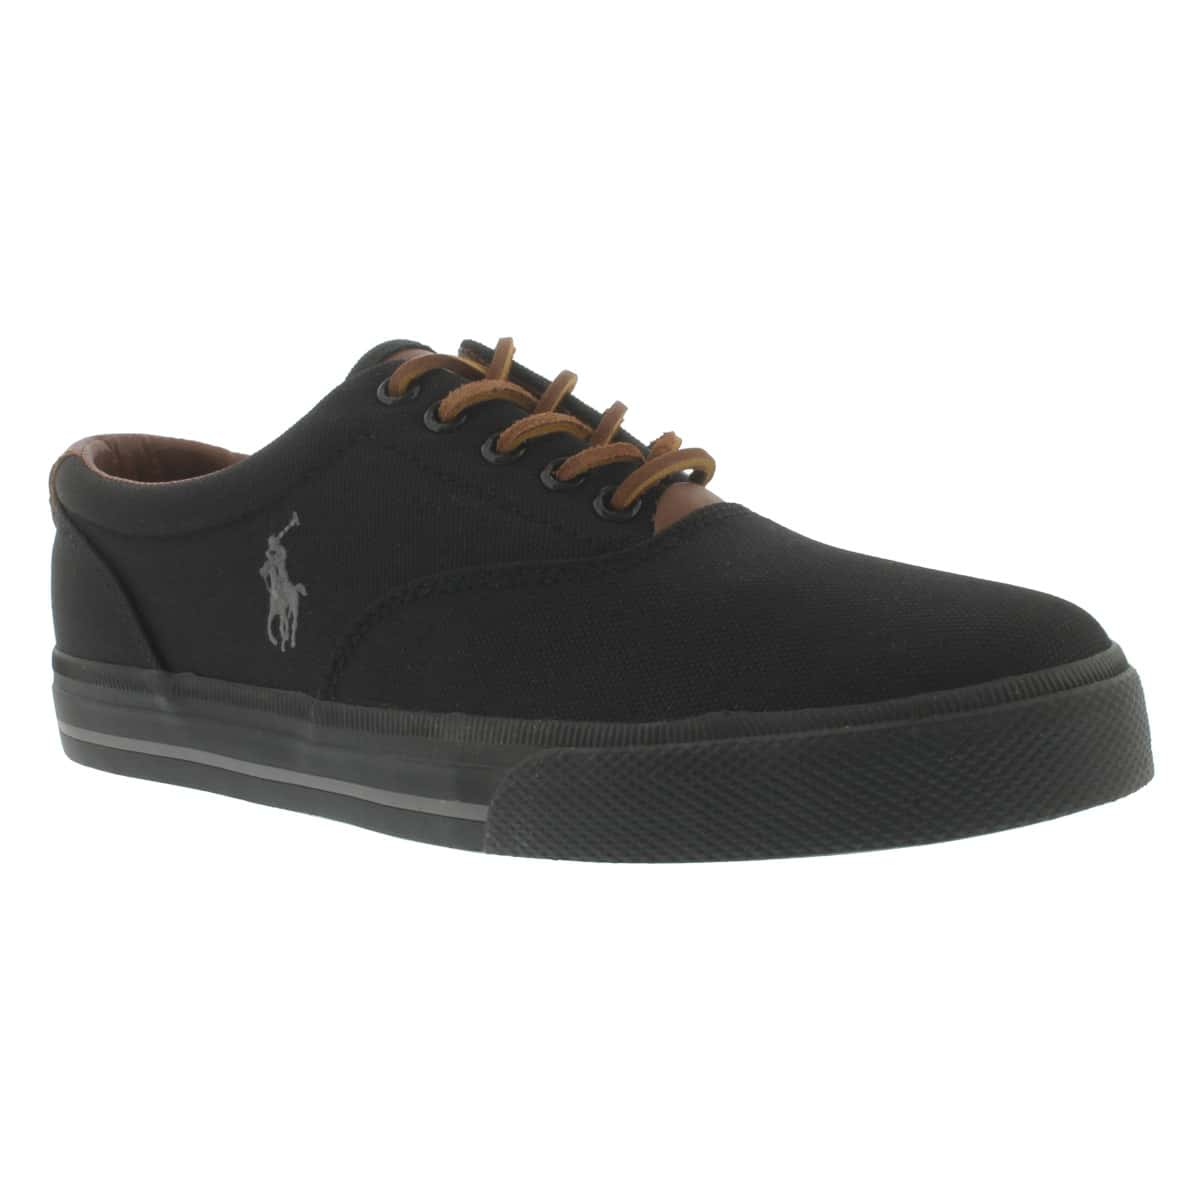 polo black for mega deals and coupons